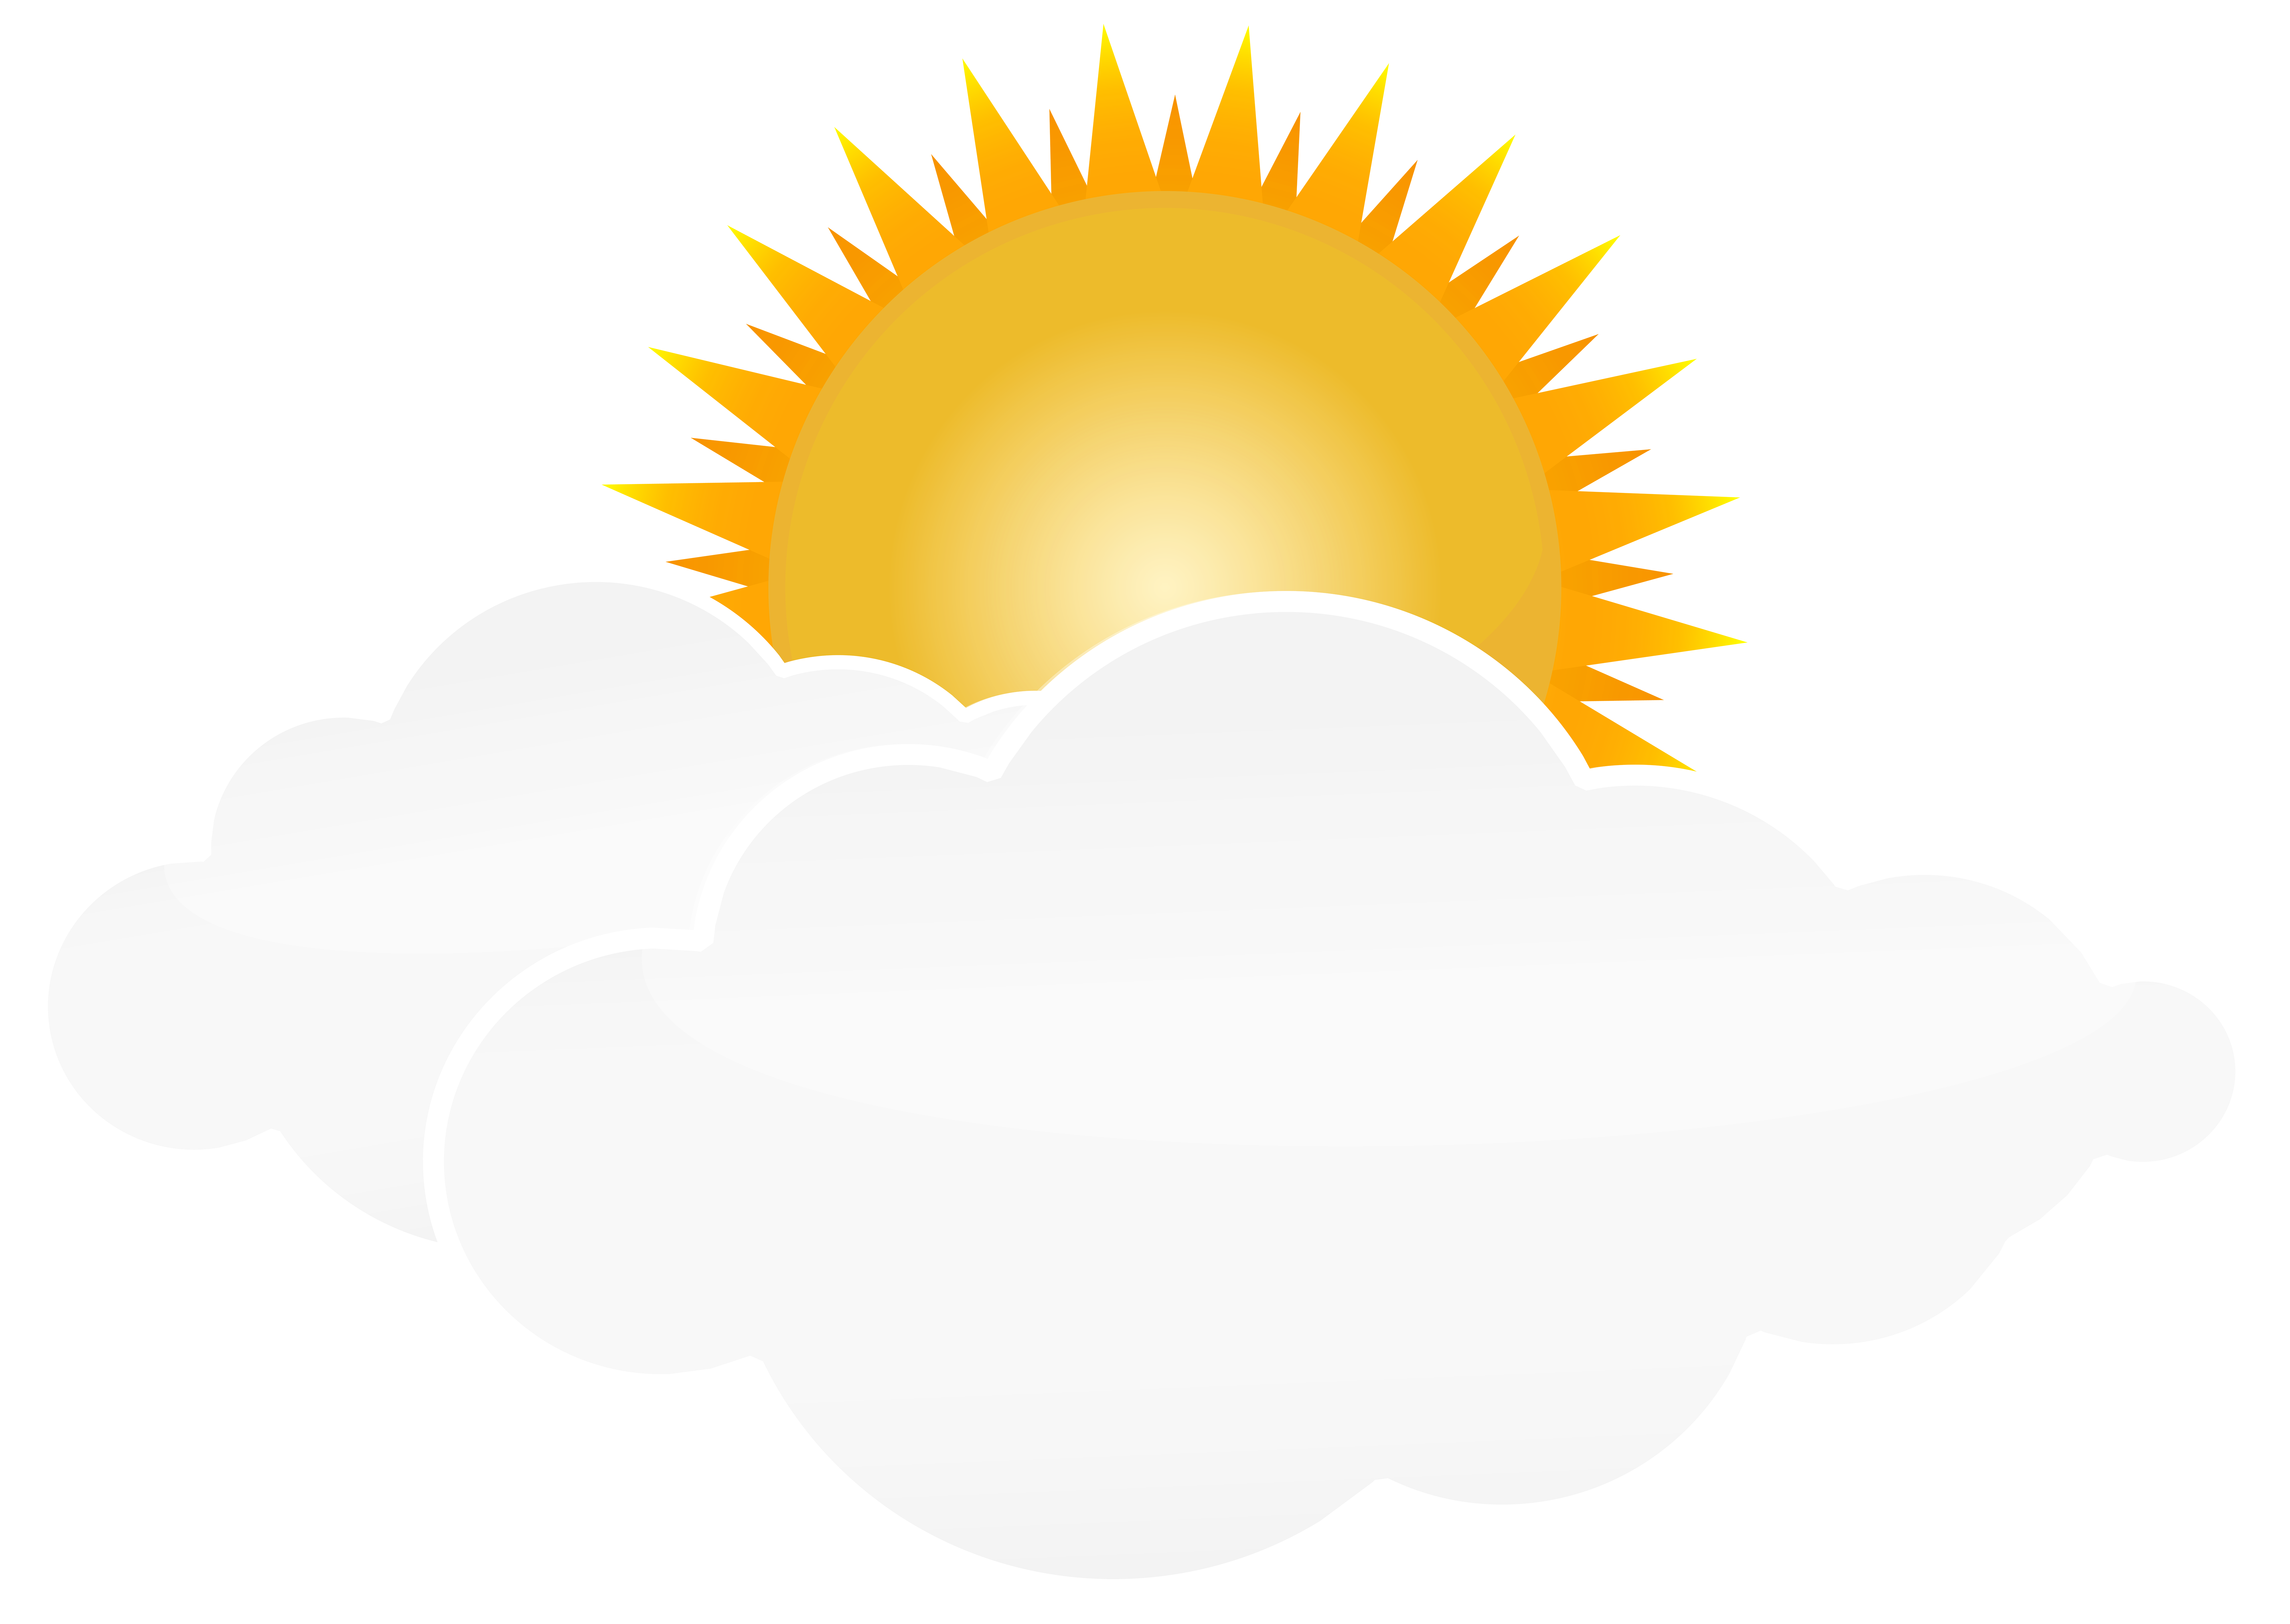 8000x5673 Sun And Clouds Clipart Png